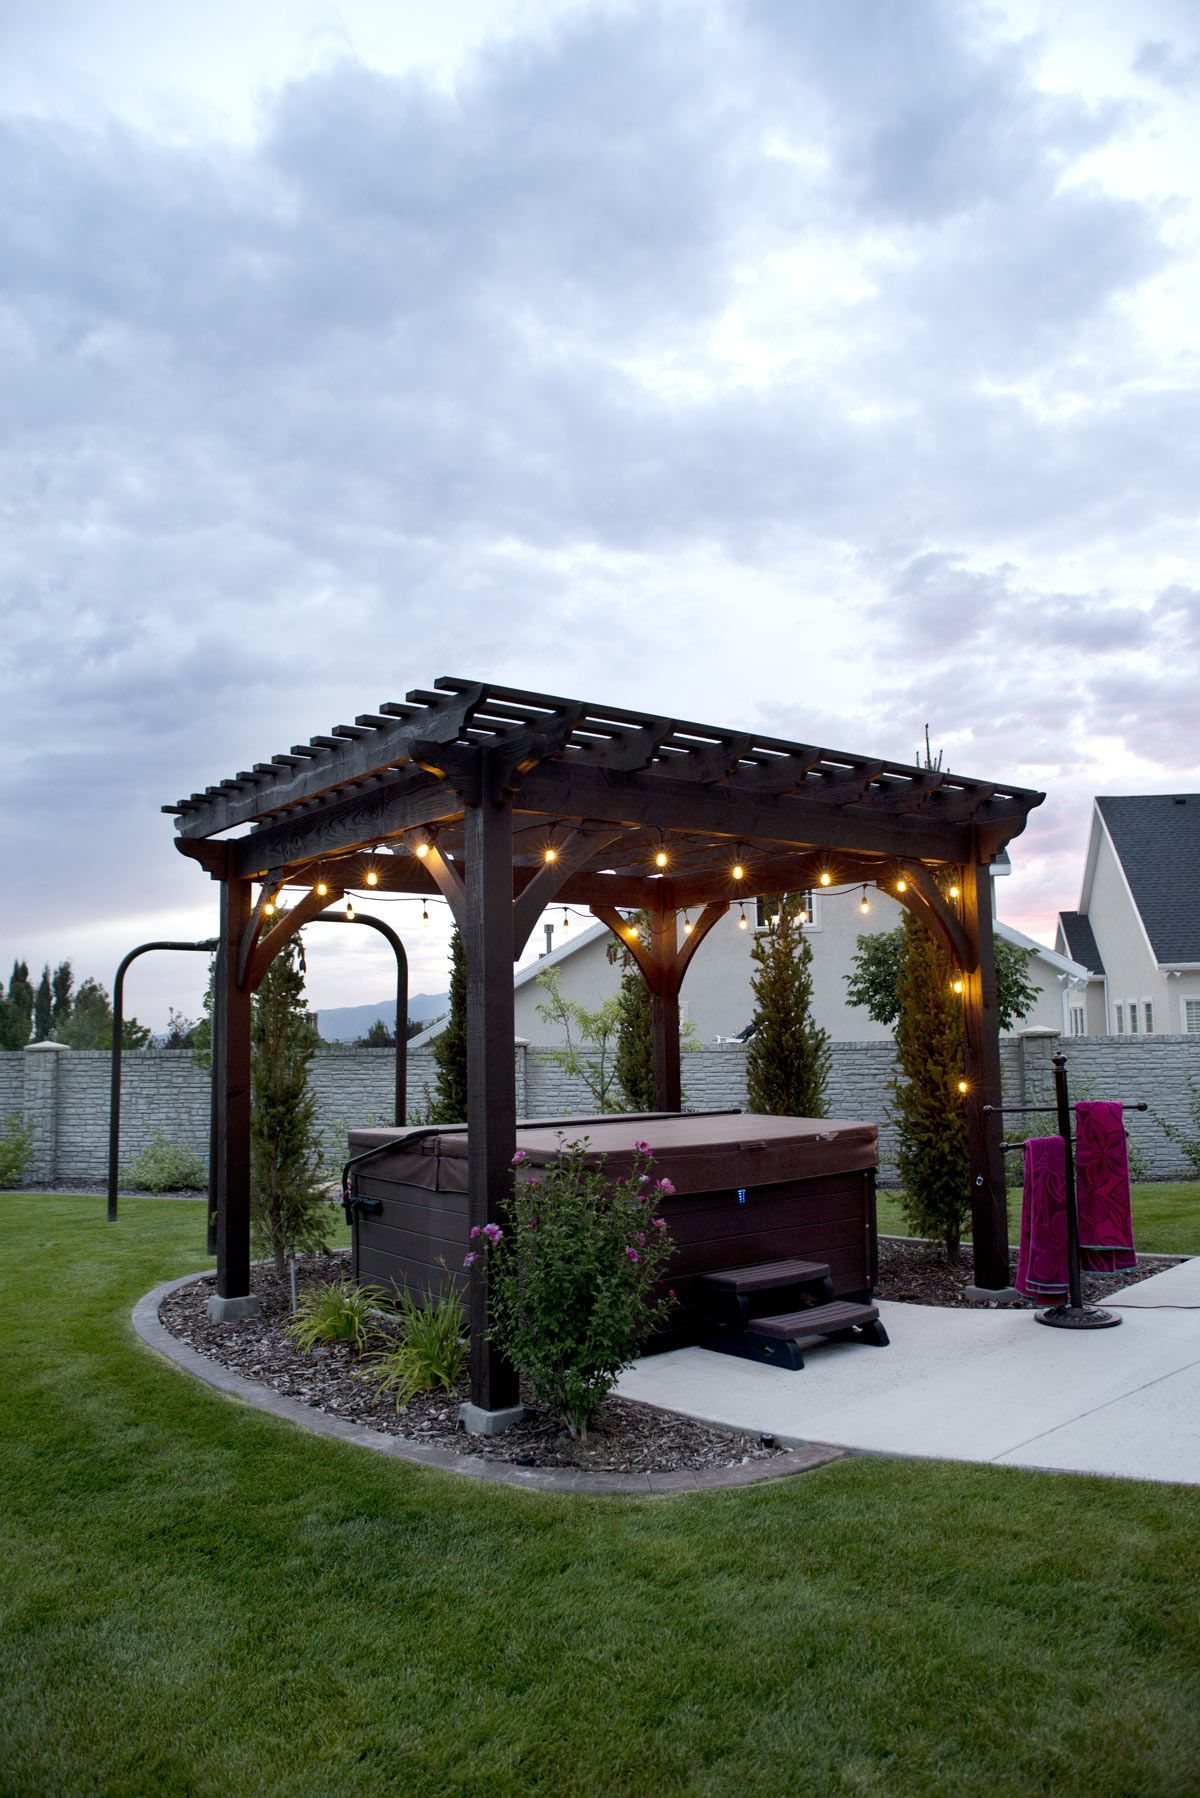 Heavenly Haven: DIY Hot Tub Pergola, Hammock Trellis | Pinterest ...